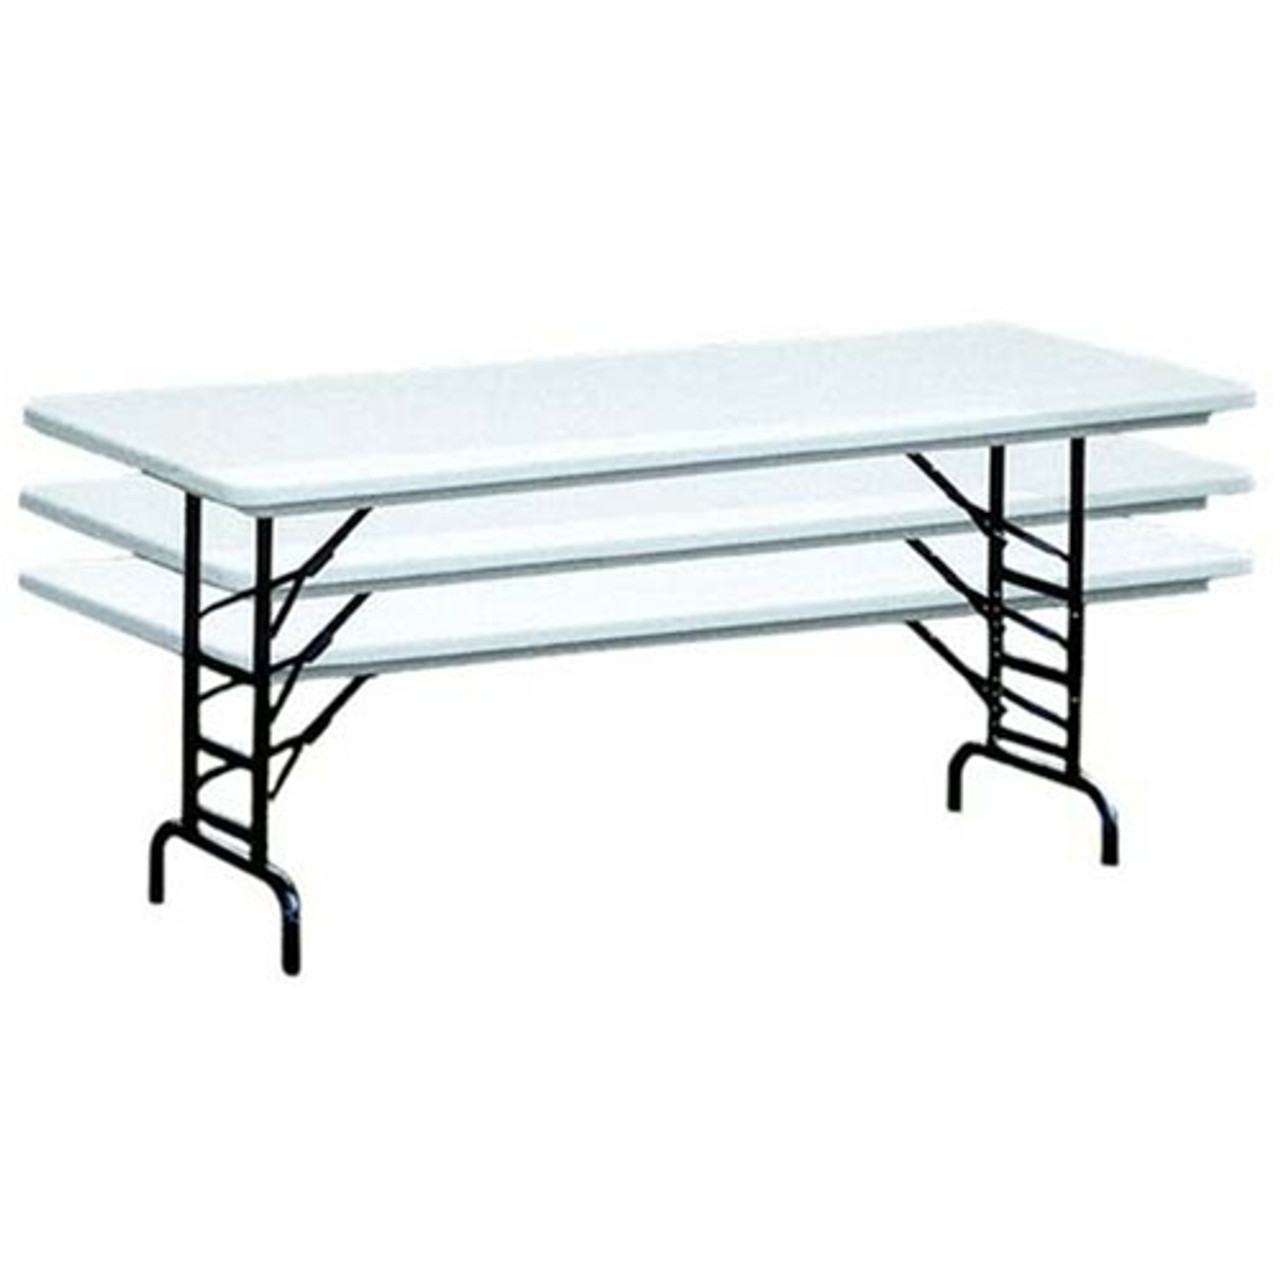 - 30x96 Adjustable Height Folding Tables